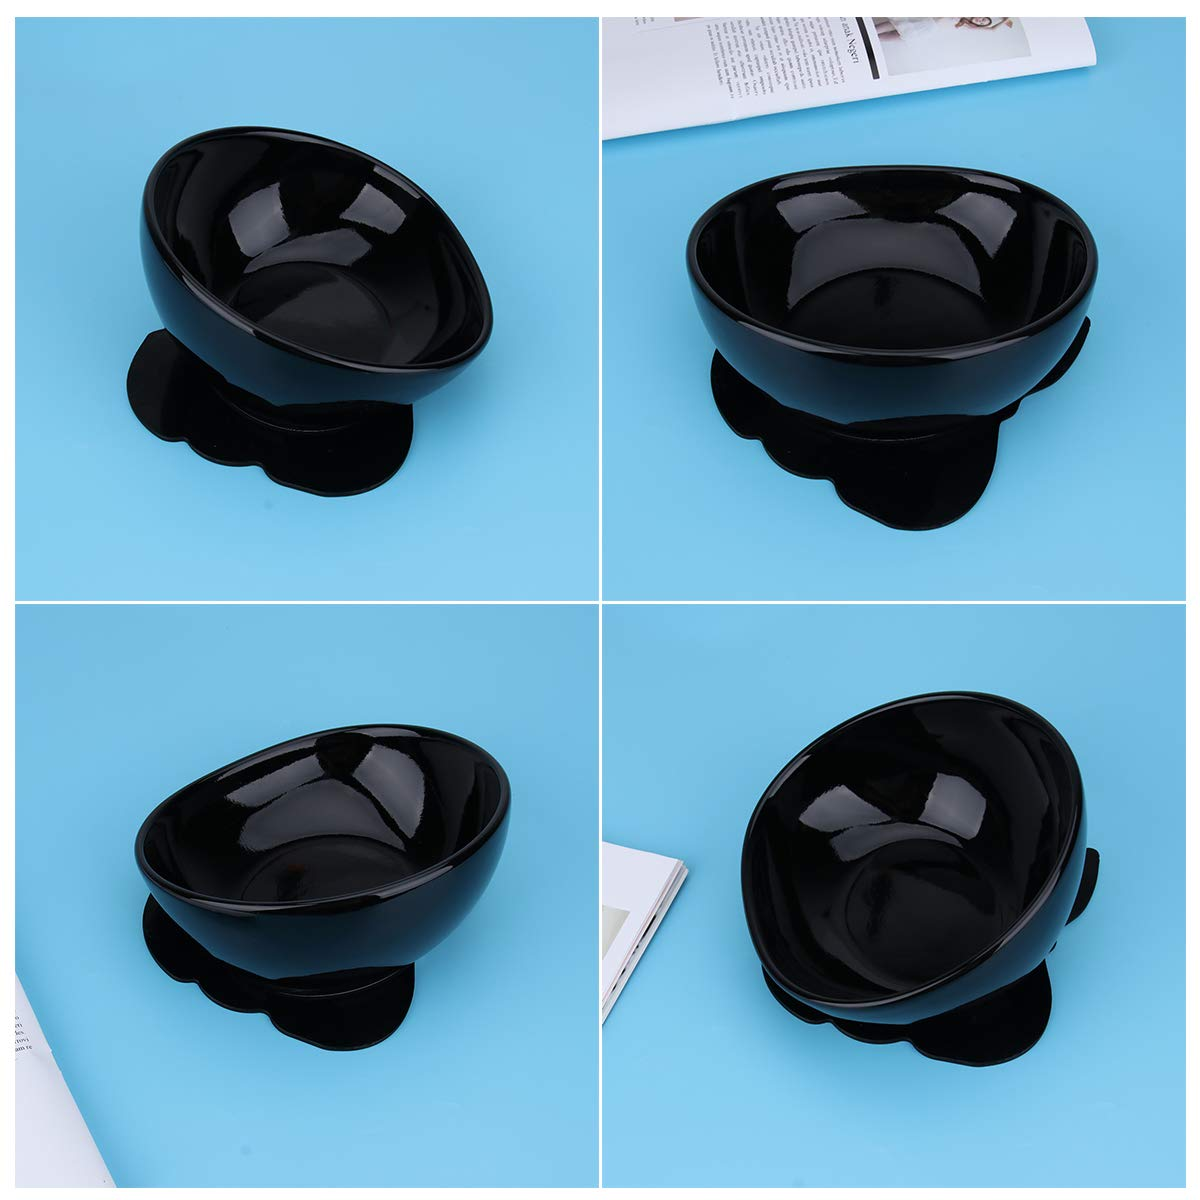 POPETPOP 1PC Fashion Black Safe Creative Pet Food Bowls Bulldog Ceramic Feeding Dishs Pet Supplies for Dog Puppy Cat Kitten by POPETPOP